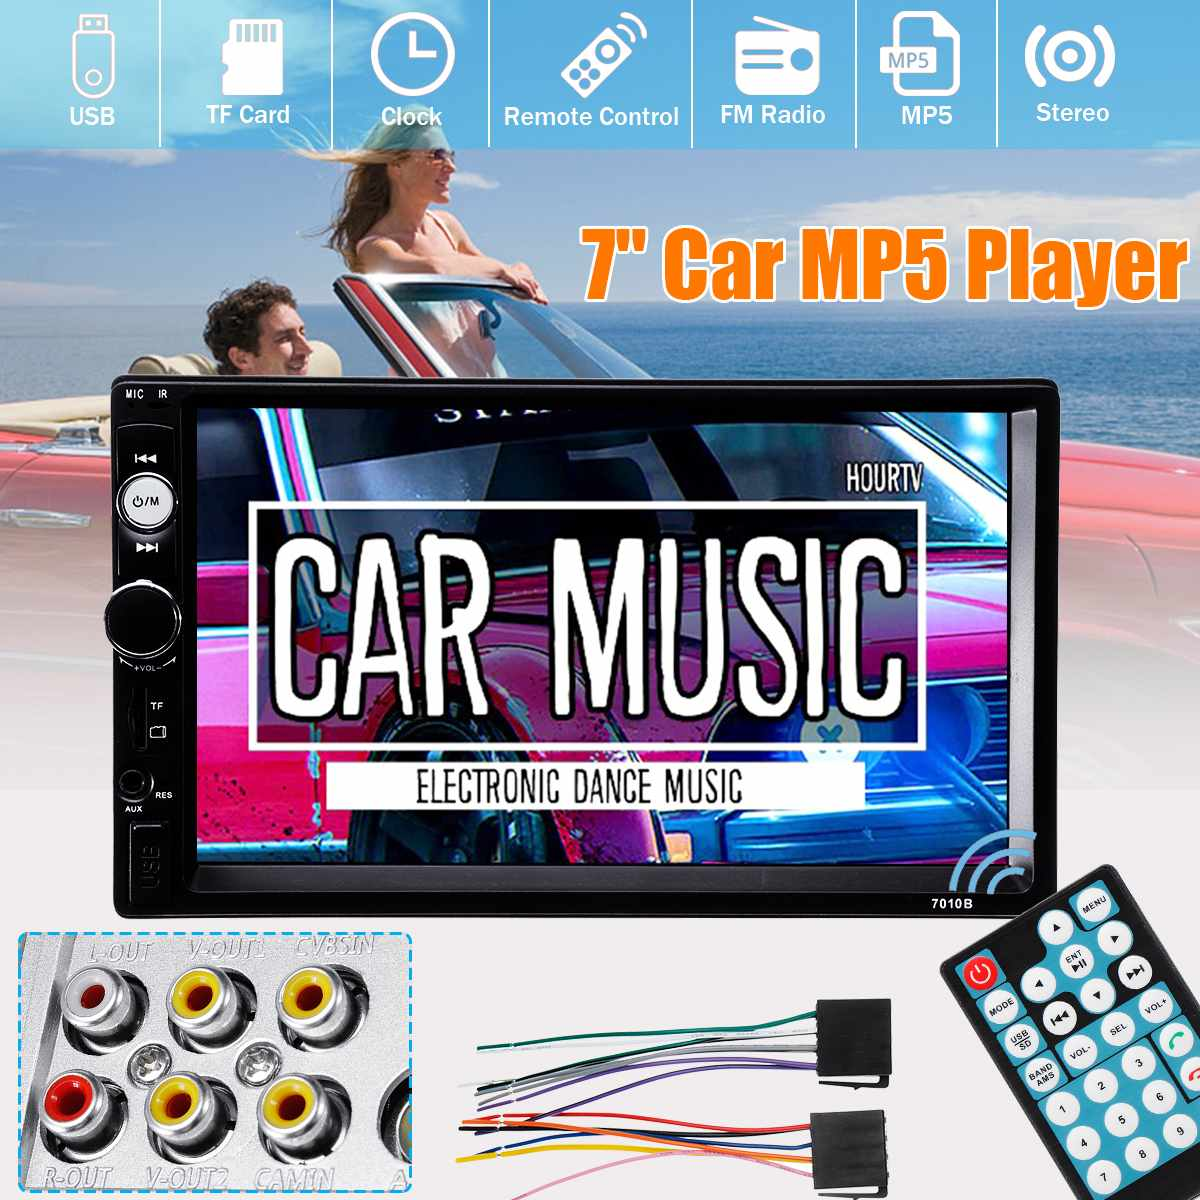 7 Car MP5 Player DC 12V 2 Din In Dash bluetooth Stereo AUX Radio Touch-Screen +Remote Built-in Car DVR System Car Video Players7 Car MP5 Player DC 12V 2 Din In Dash bluetooth Stereo AUX Radio Touch-Screen +Remote Built-in Car DVR System Car Video Players